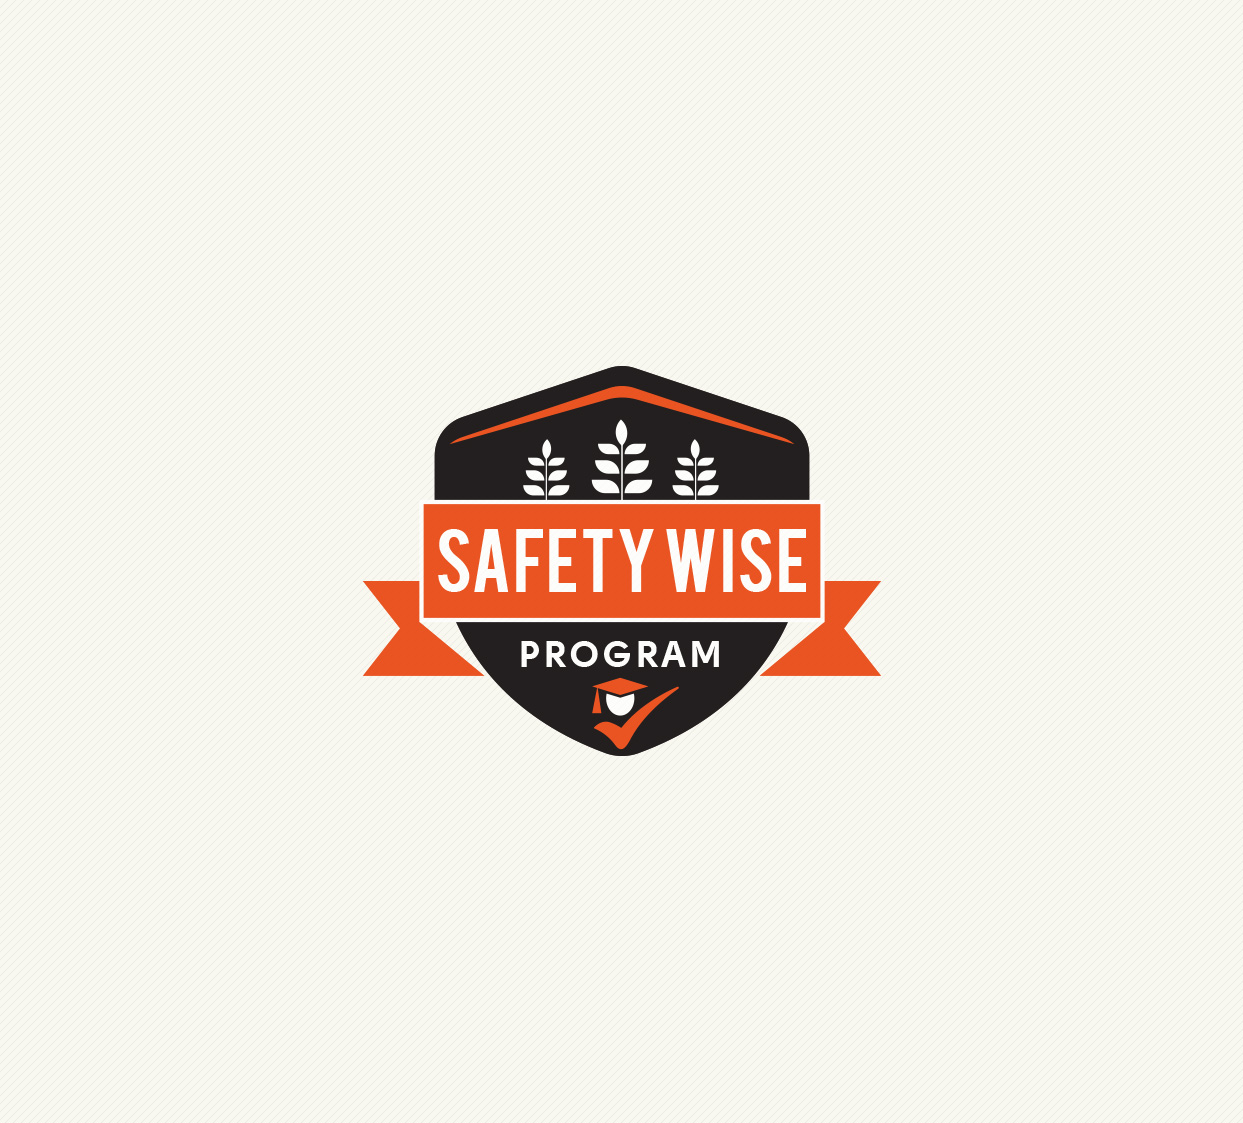 Logo Design by jakuart - Entry No. 215 in the Logo Design Contest New Logo Design for Safety Wise Program.